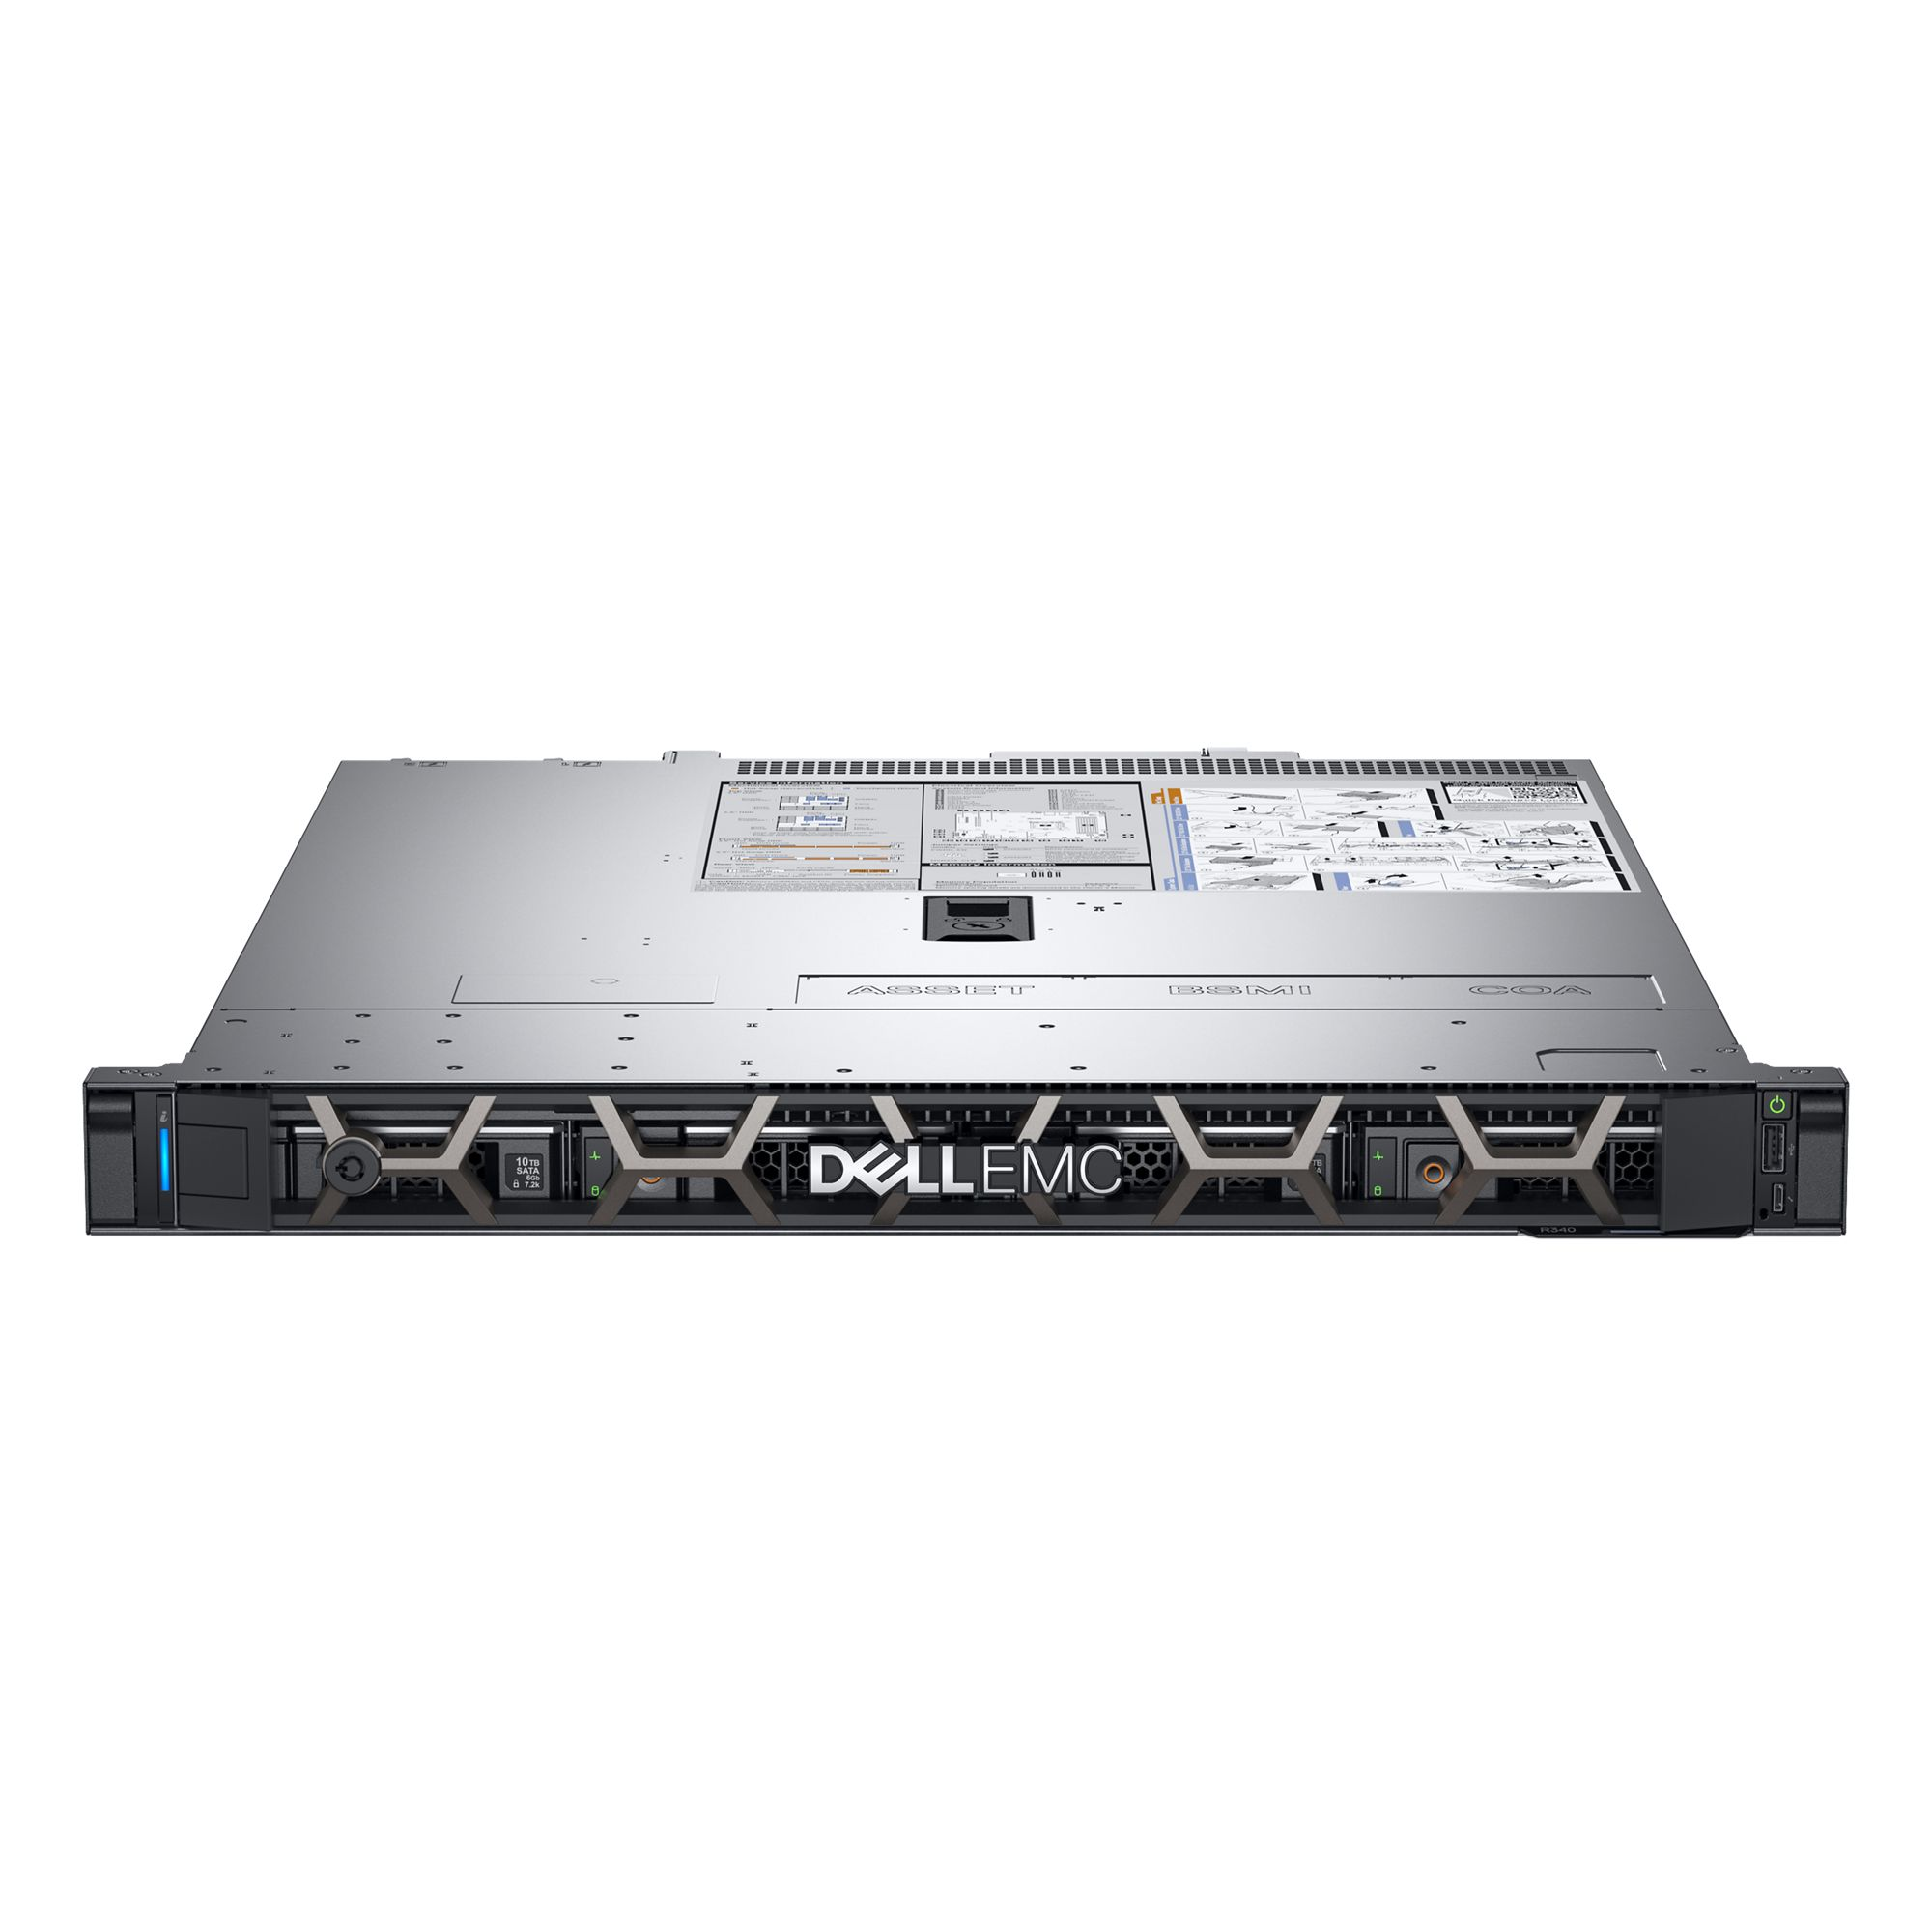 Serwer DELL PowerEdge R340 E-2234 16GB 480GB SSD H330 DVDRW 2x350W iDRAC Exp 3yNBD